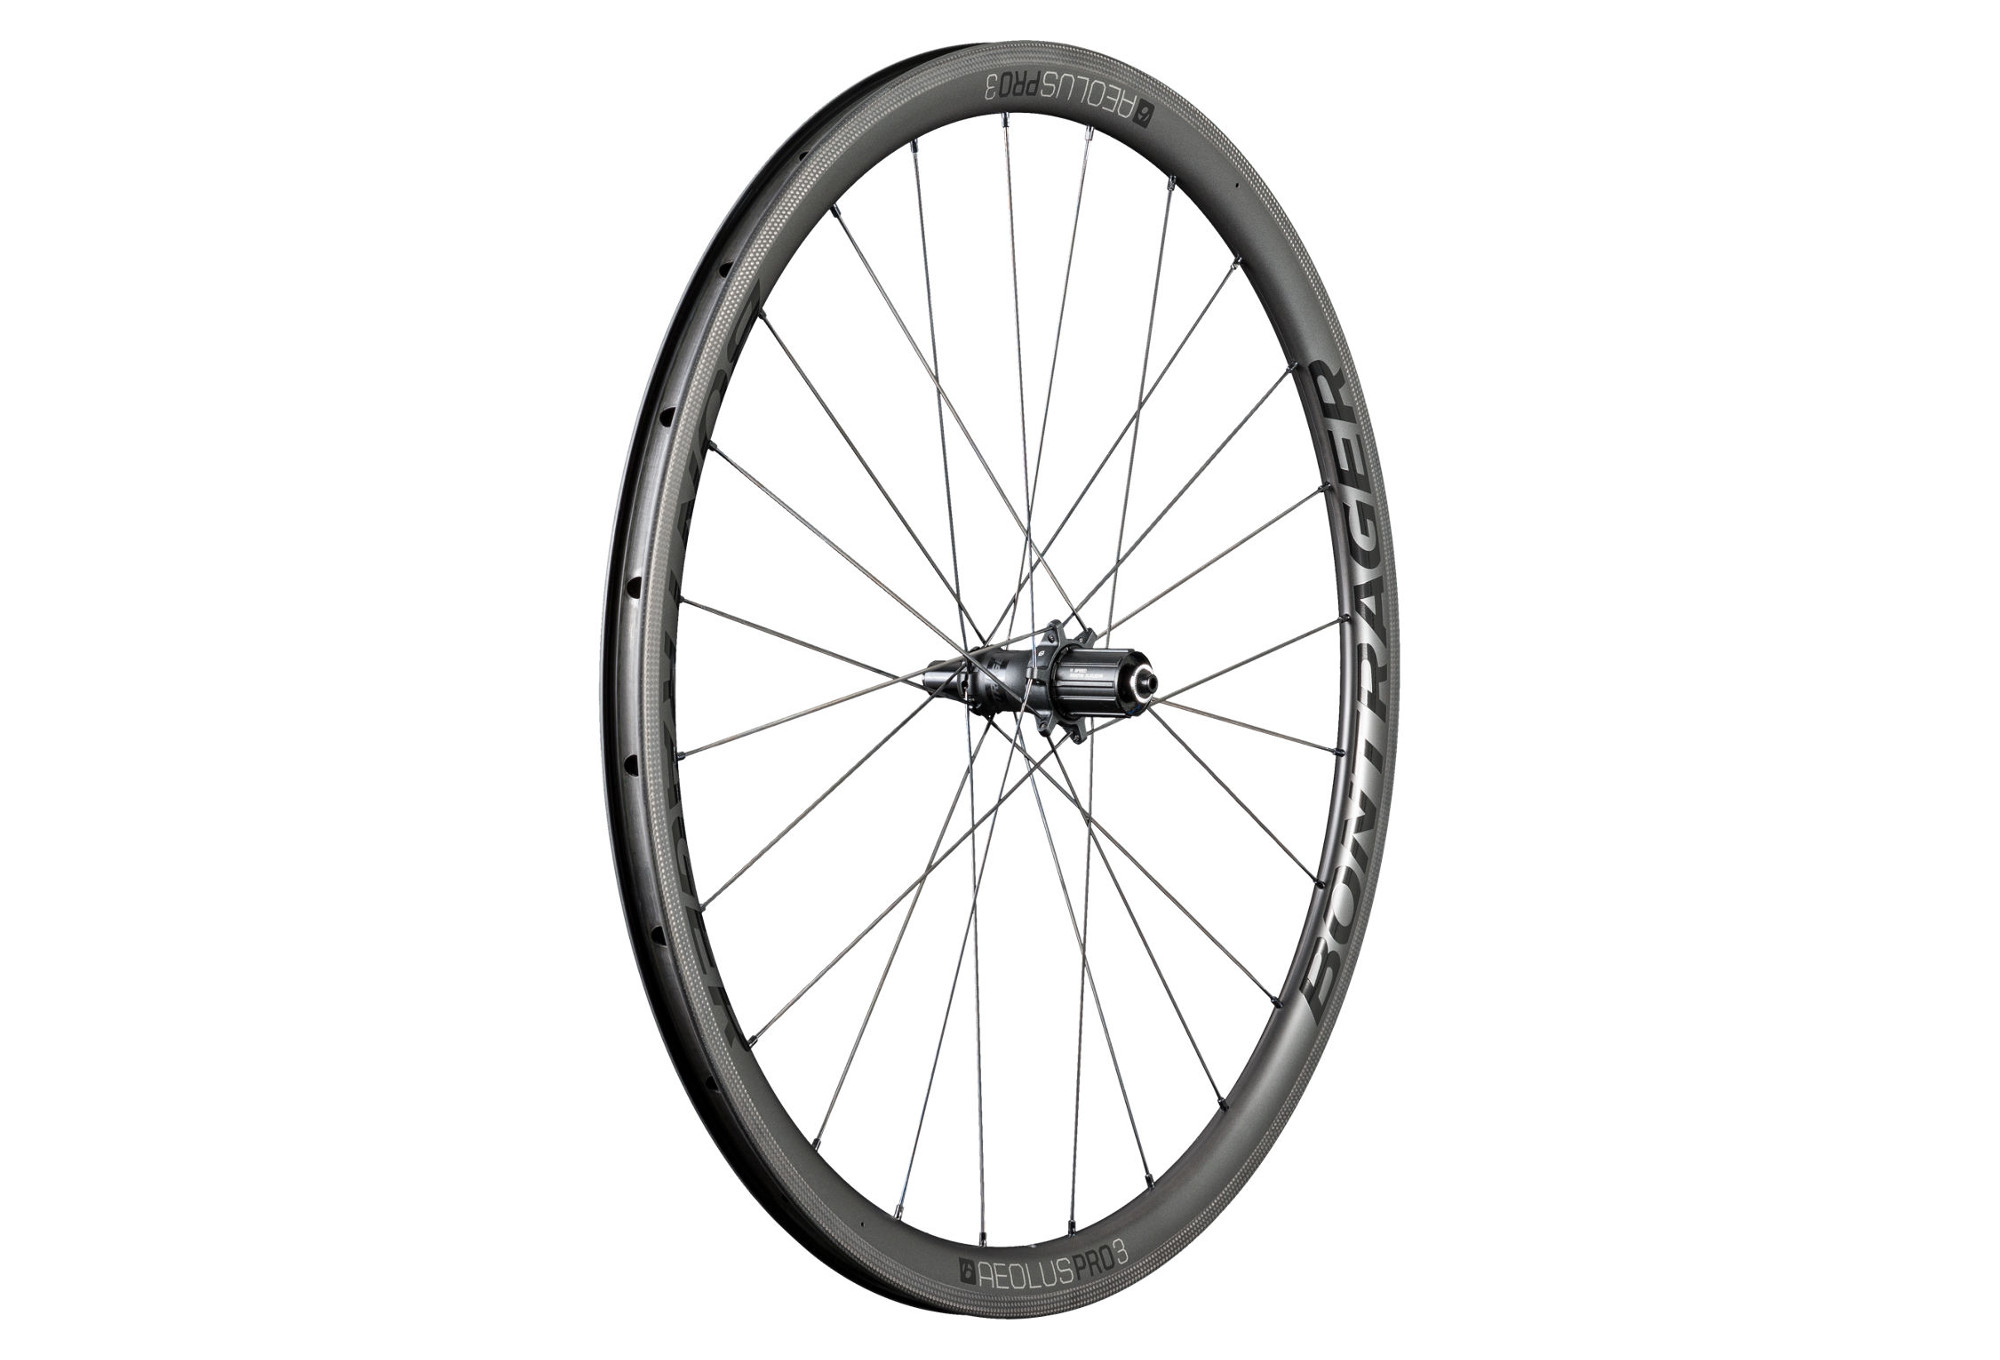 BONTRAGER 2018 Rear Wheel Aeolus Pro 3 TLR Clincher